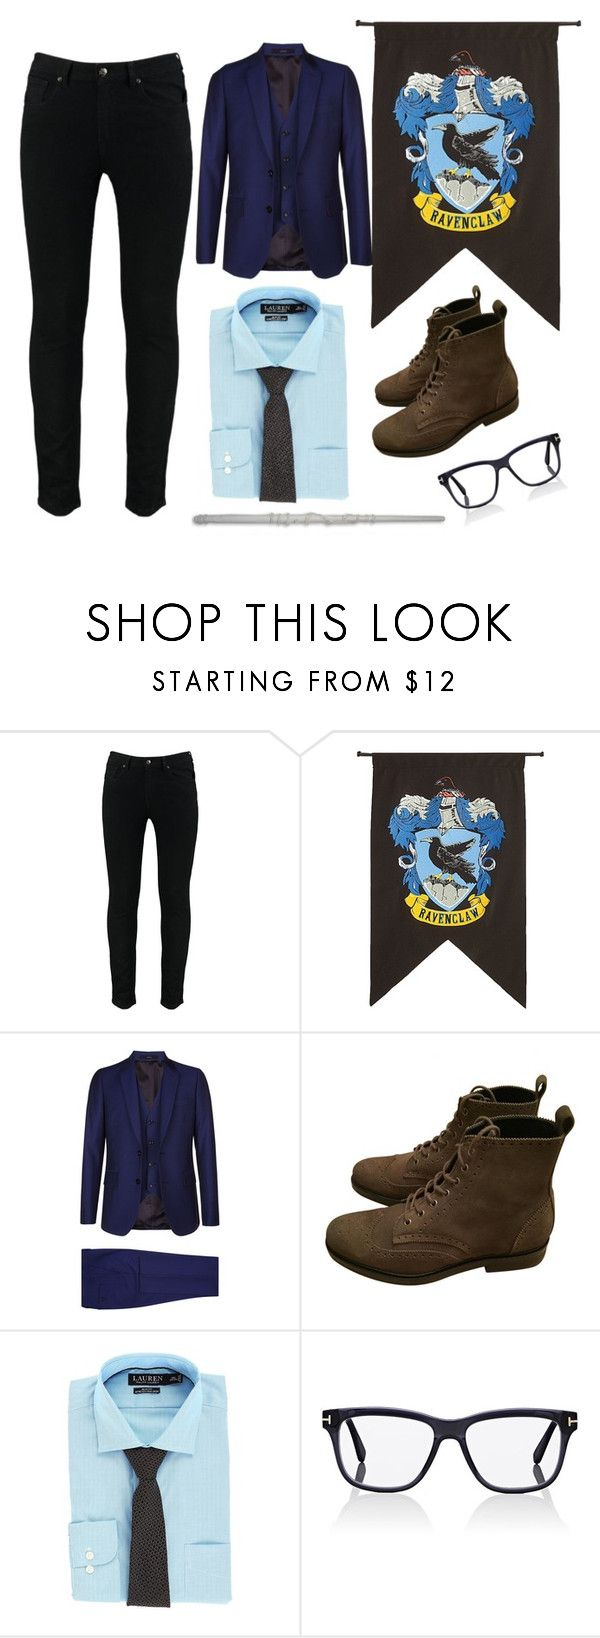 """""""ravenclaw"""" by kylieriot ❤ liked on Polyvore featuring Rubie's Costume Co., Paul Smith, Pierre Hardy, Lauren Ralph Lauren, Tom Ford, men's fashion and menswear"""